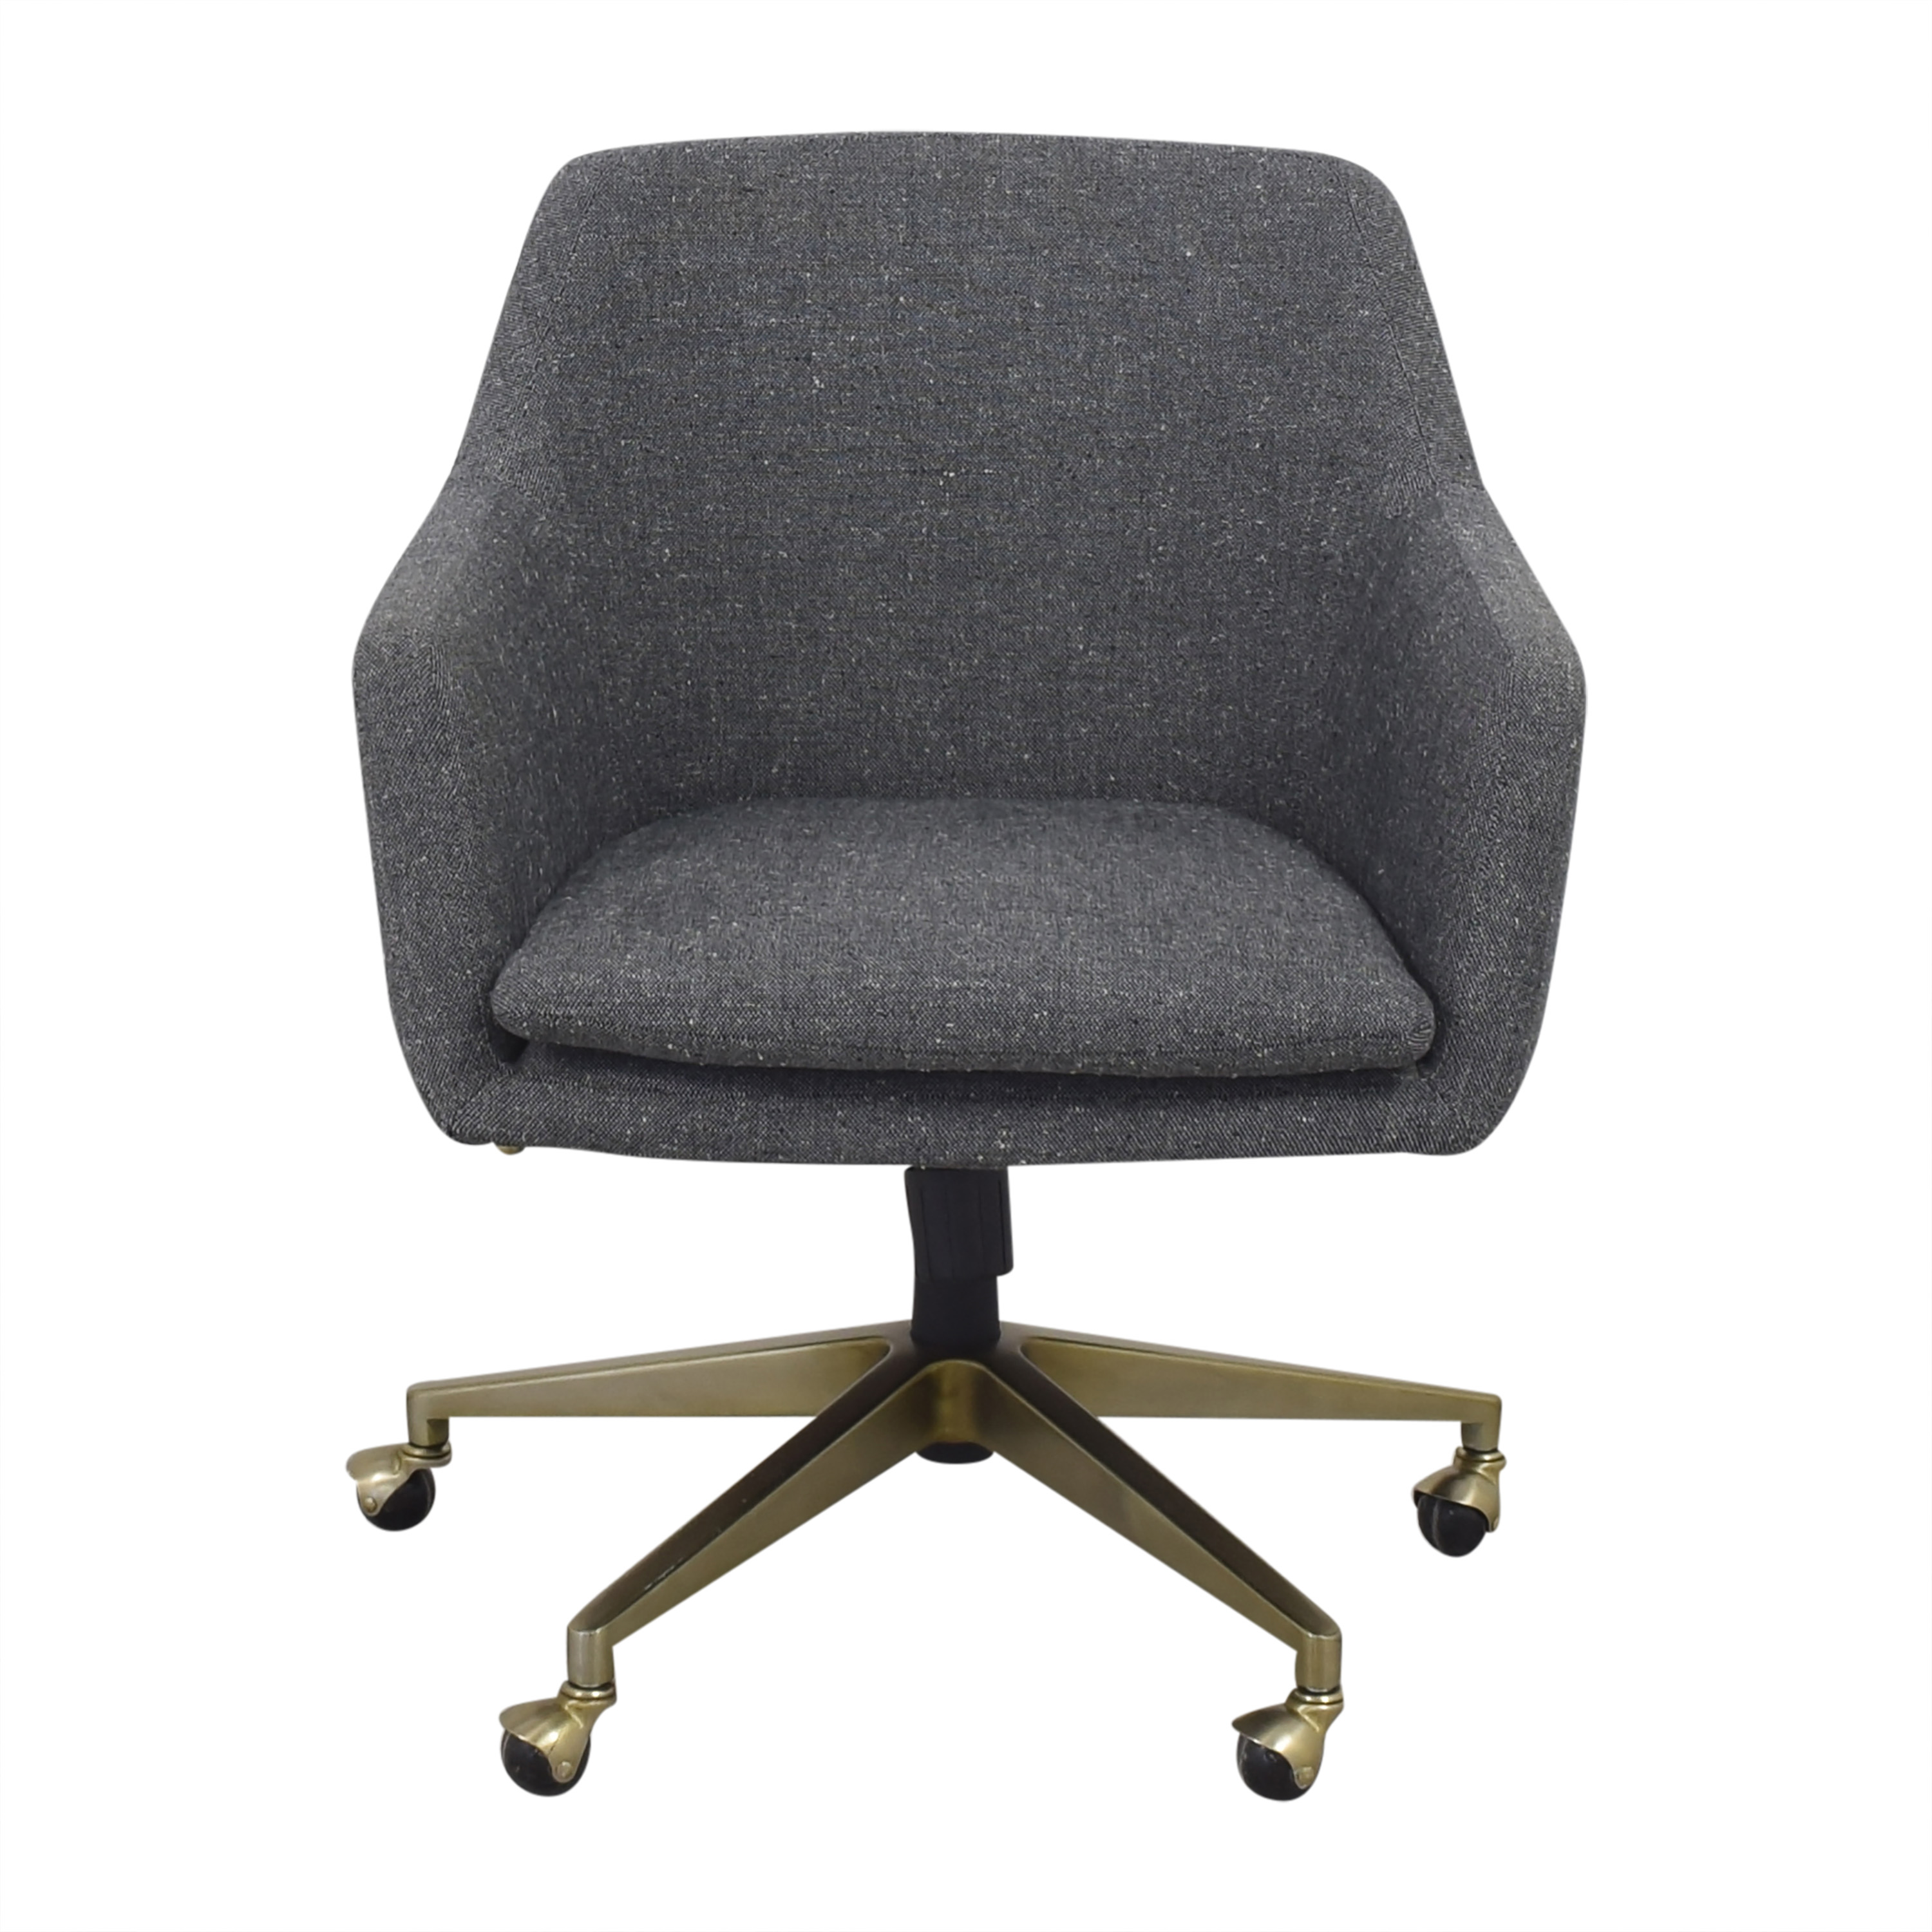 West Elm West Elm Helvetica Upholstered Office Chair for sale